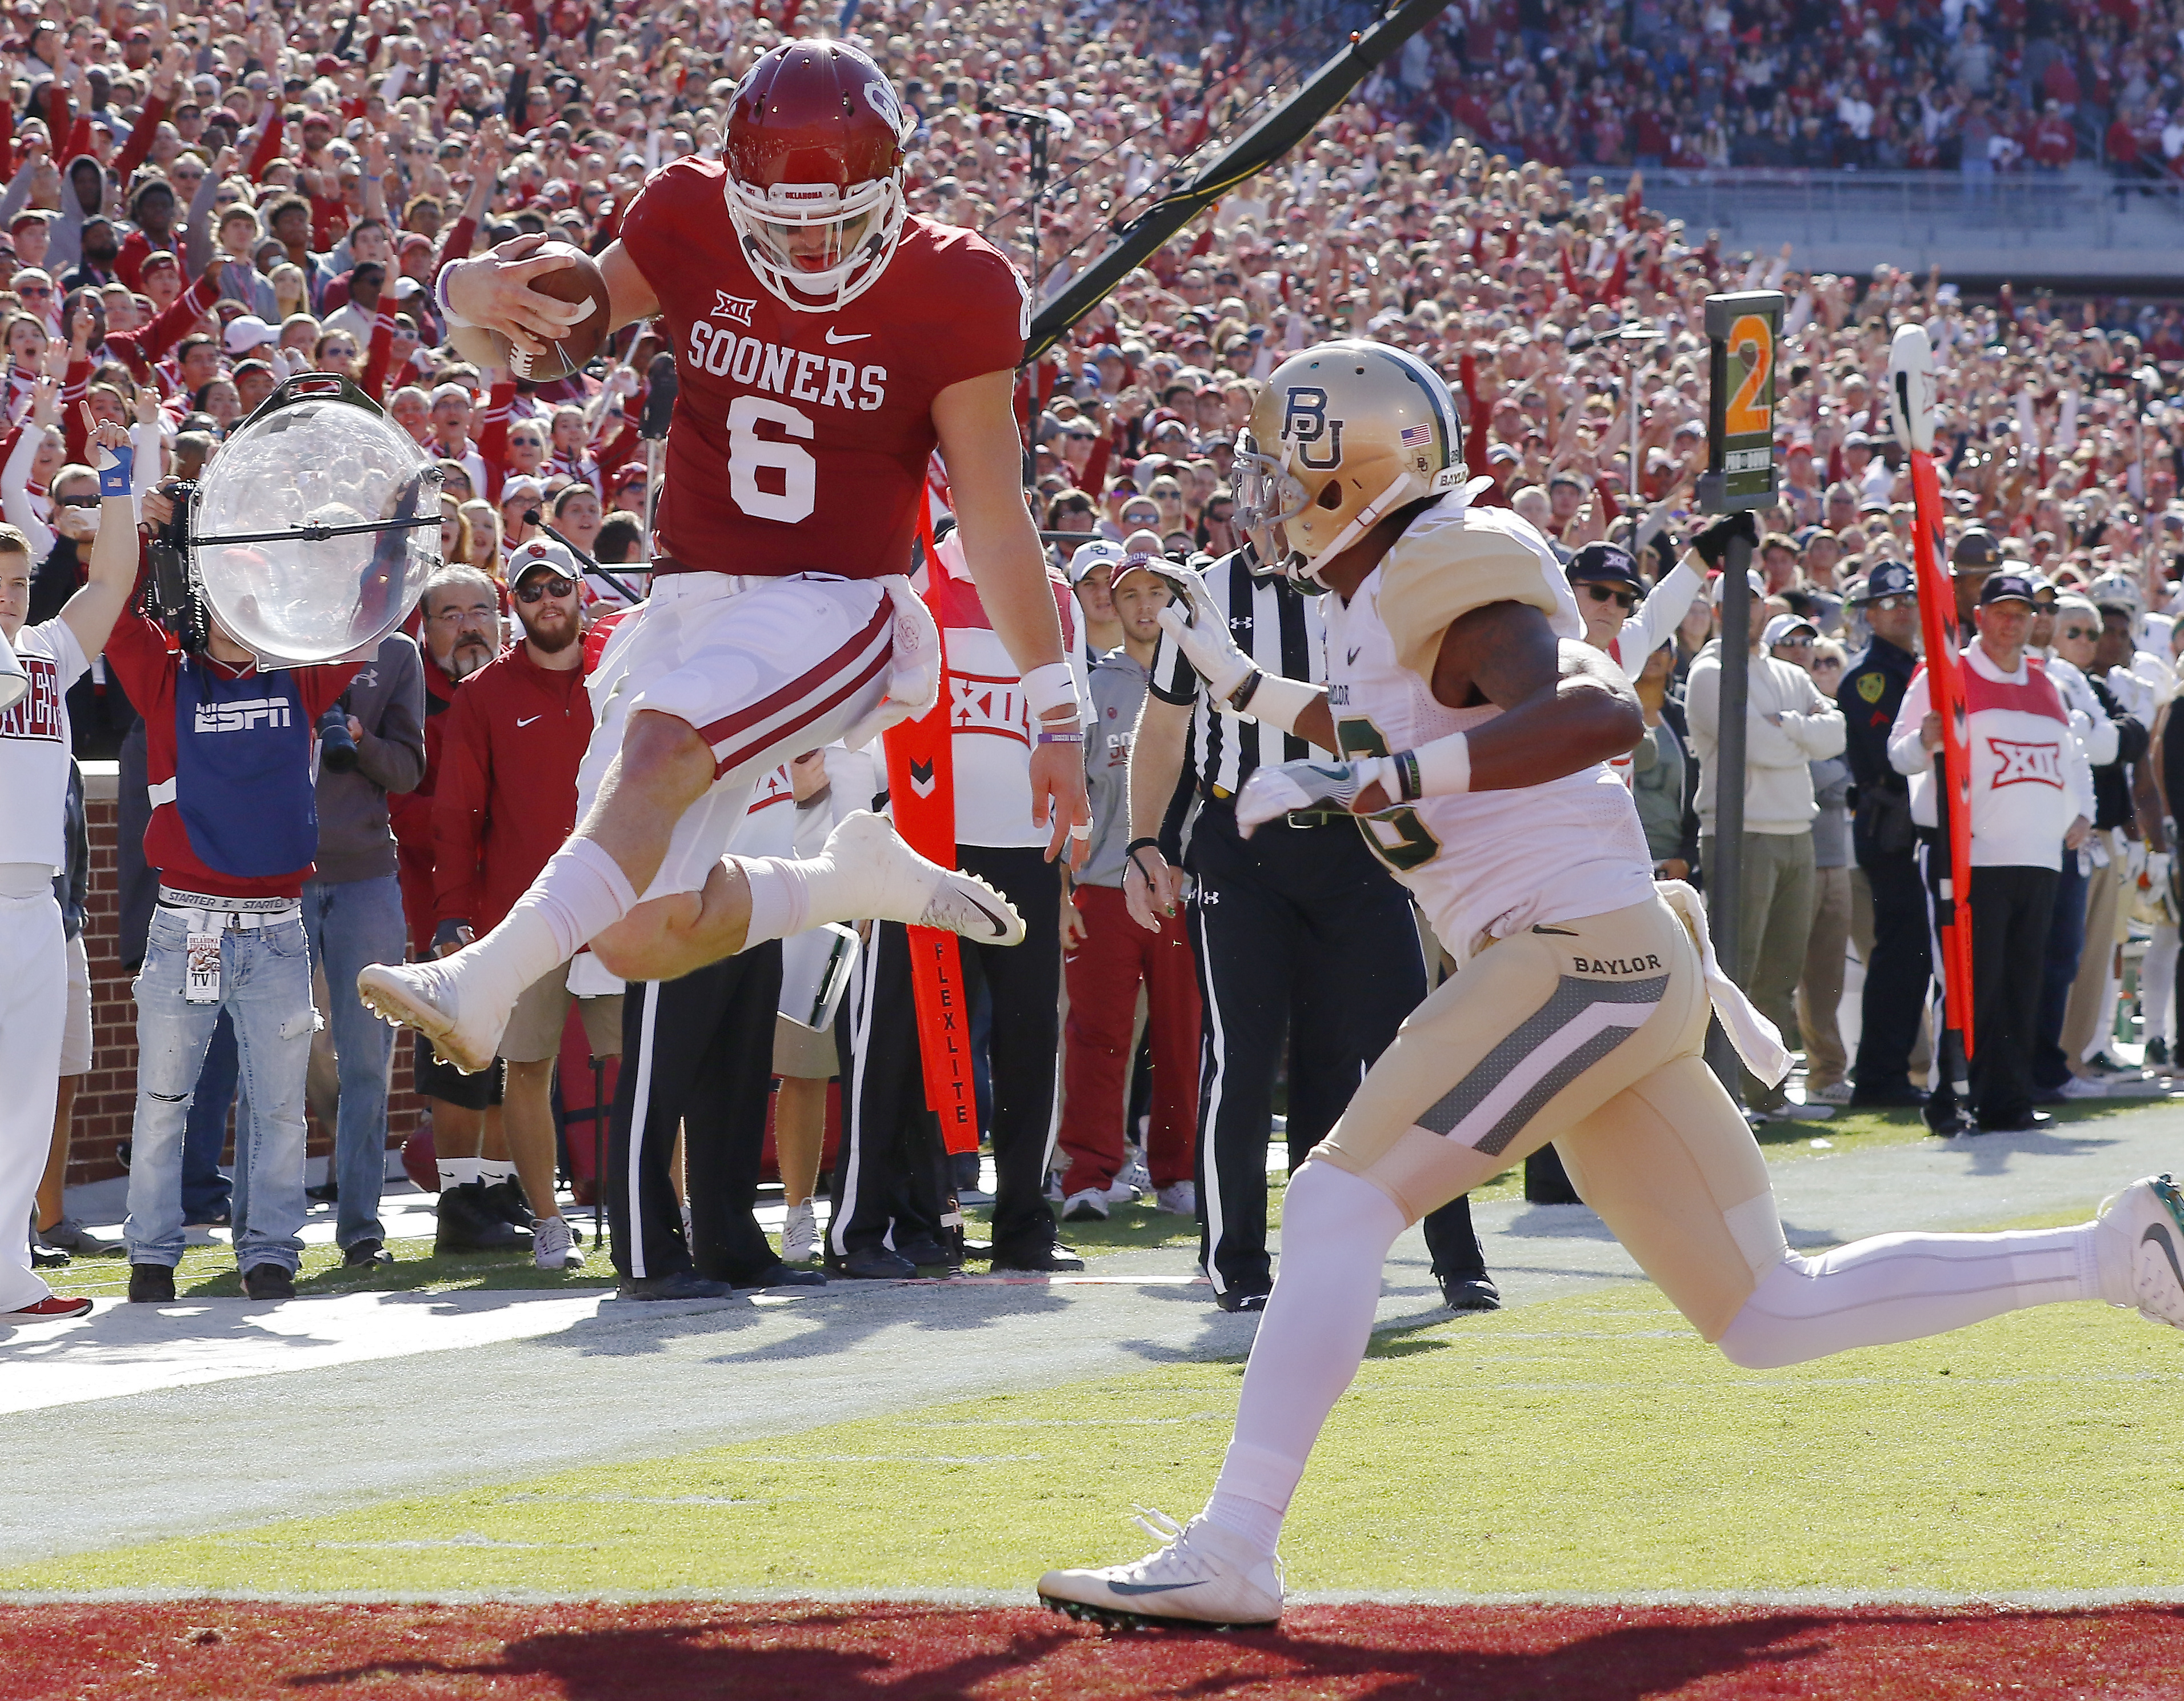 FILE - In this Nov. 12, 2016, file photo, Oklahoma quarterback Baker Mayfield (6) runs in for a touchdown ahead of Baylor safety Davion Hall (2) during the first half of a NCAA college football game in Norman, Okla. Mayfield was selected to the AP All Big